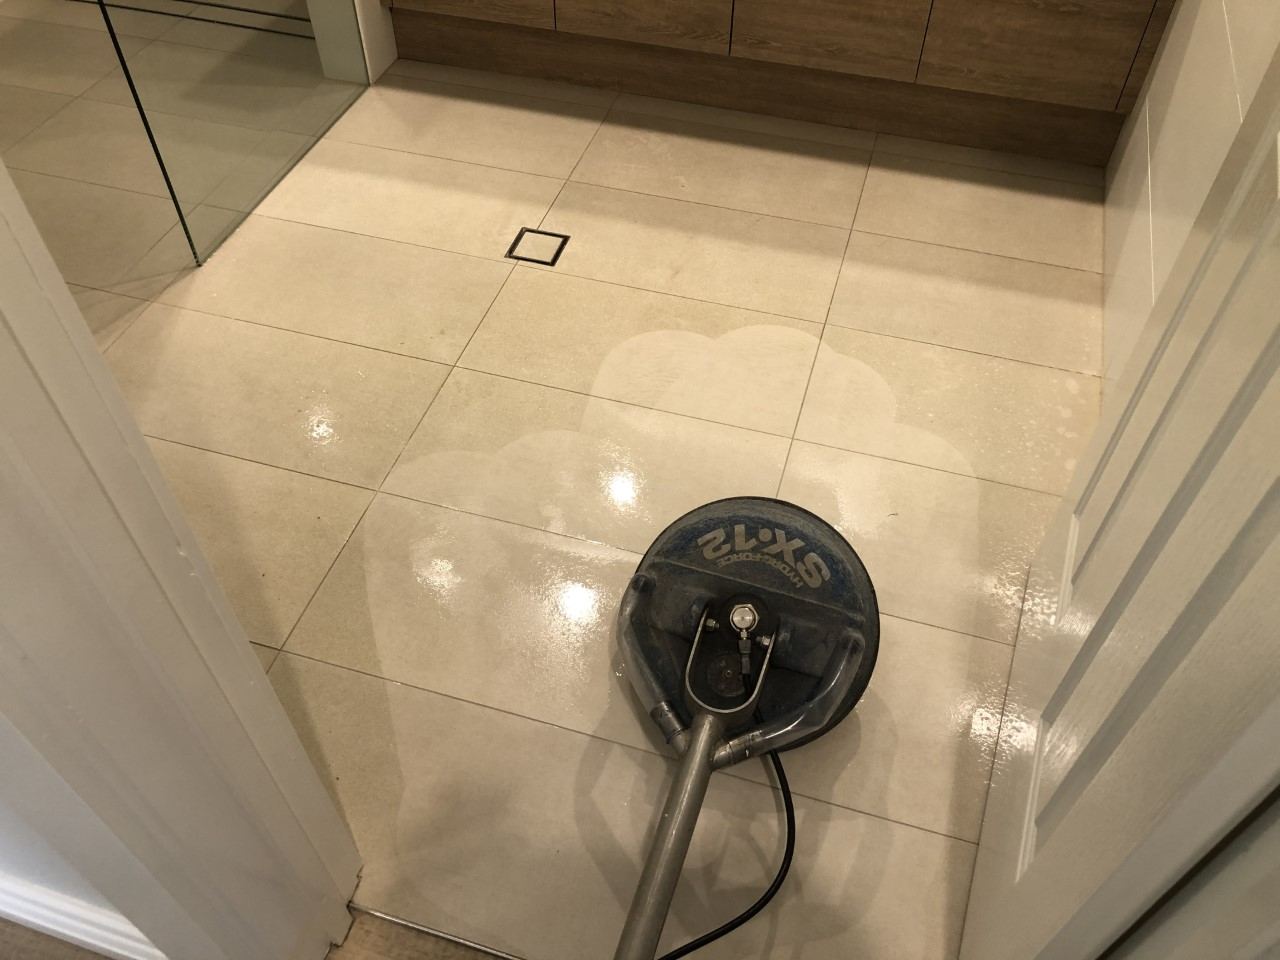 Professional tile & grout cleaning service Perth - Grouit Magic